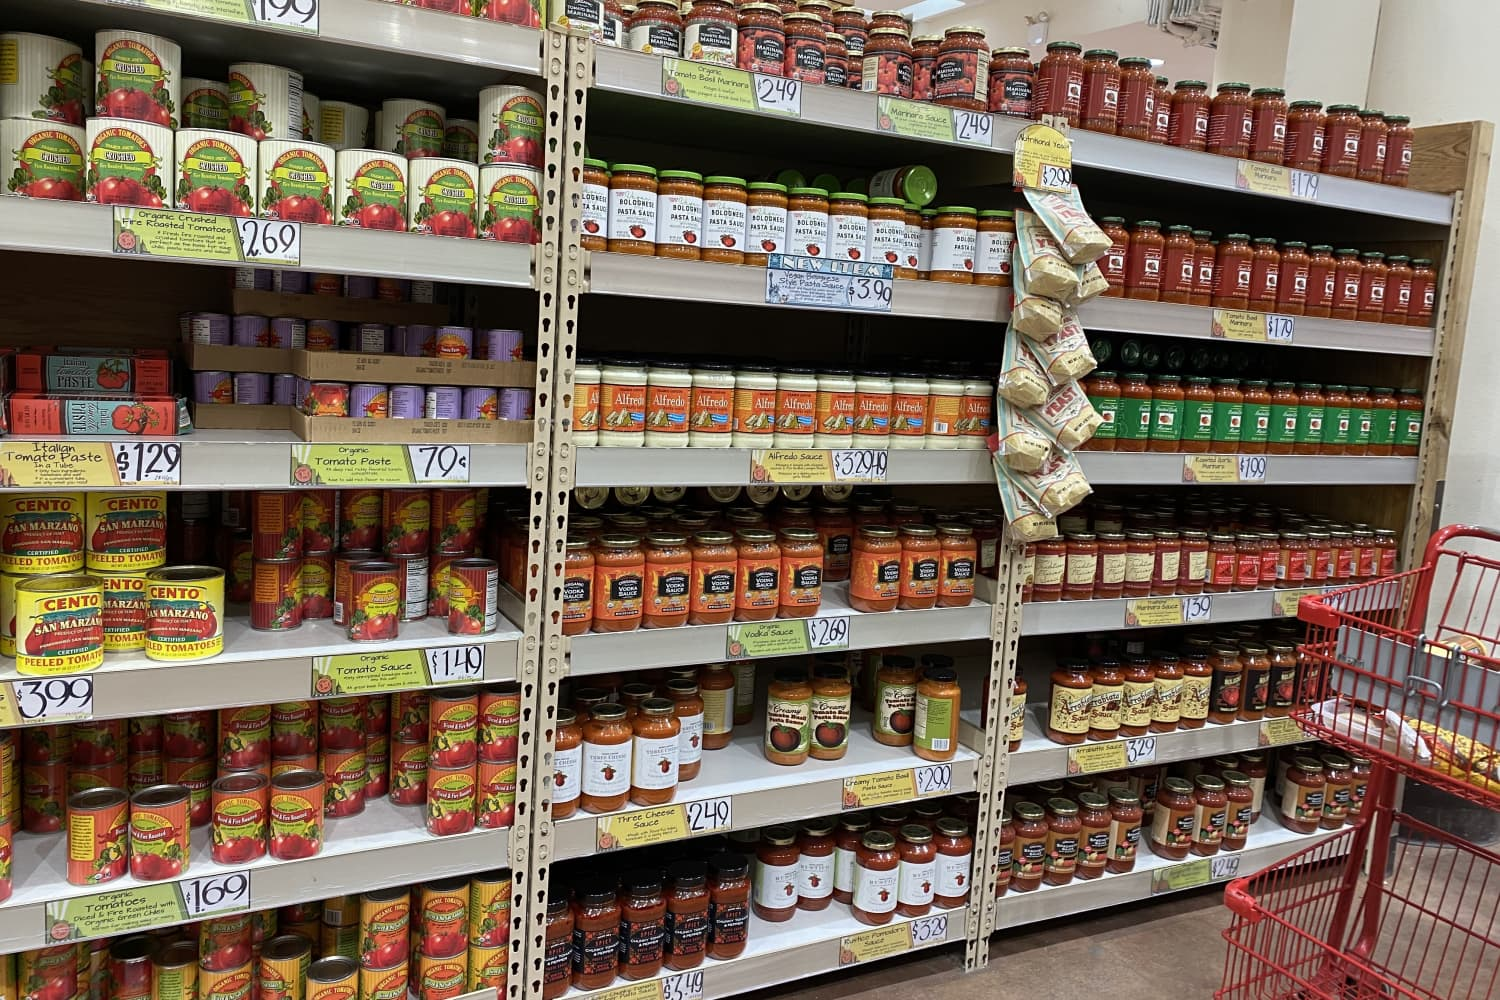 I Tried Every Single Jarred Pasta Sauce at Trader Joe's — These Are the Ones I'll Buy Again